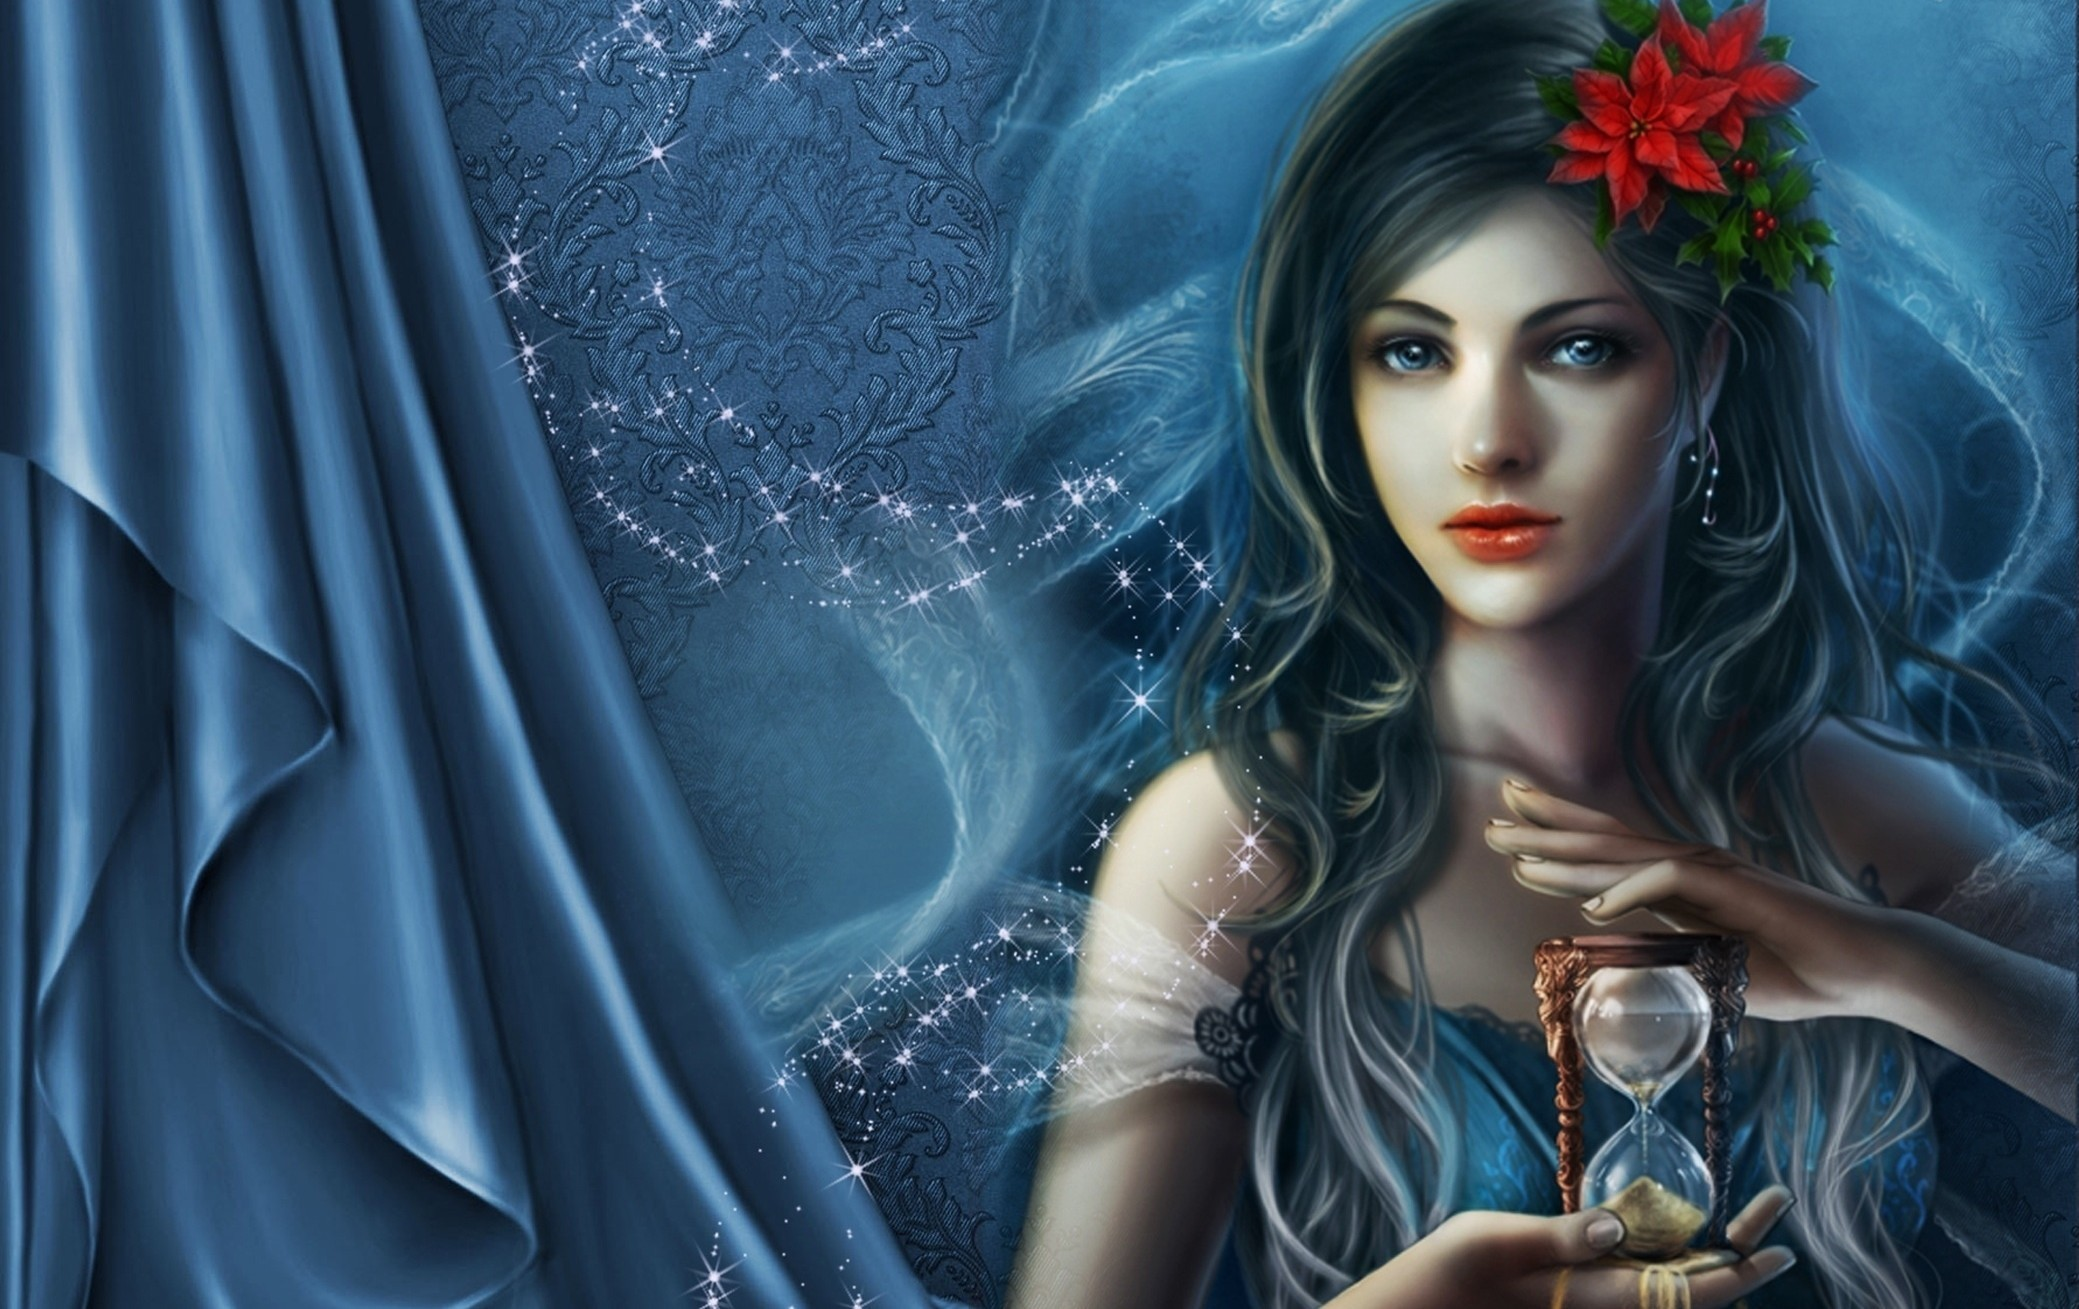 Timeless beauty hd wallpaper background image - Ladies wallpaper ...